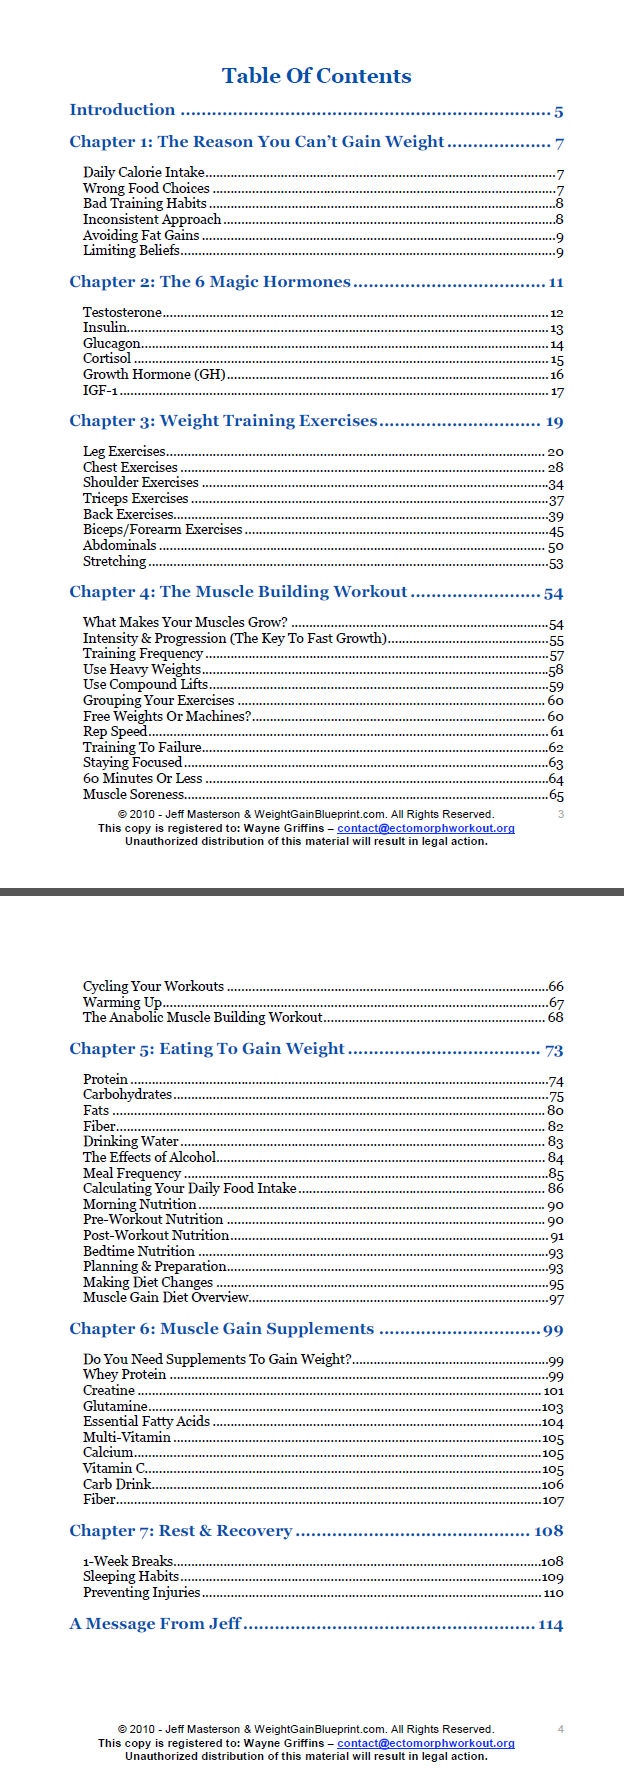 Jeff masterson weight gain blueprint review weight gain blueprint review ratings malvernweather Gallery